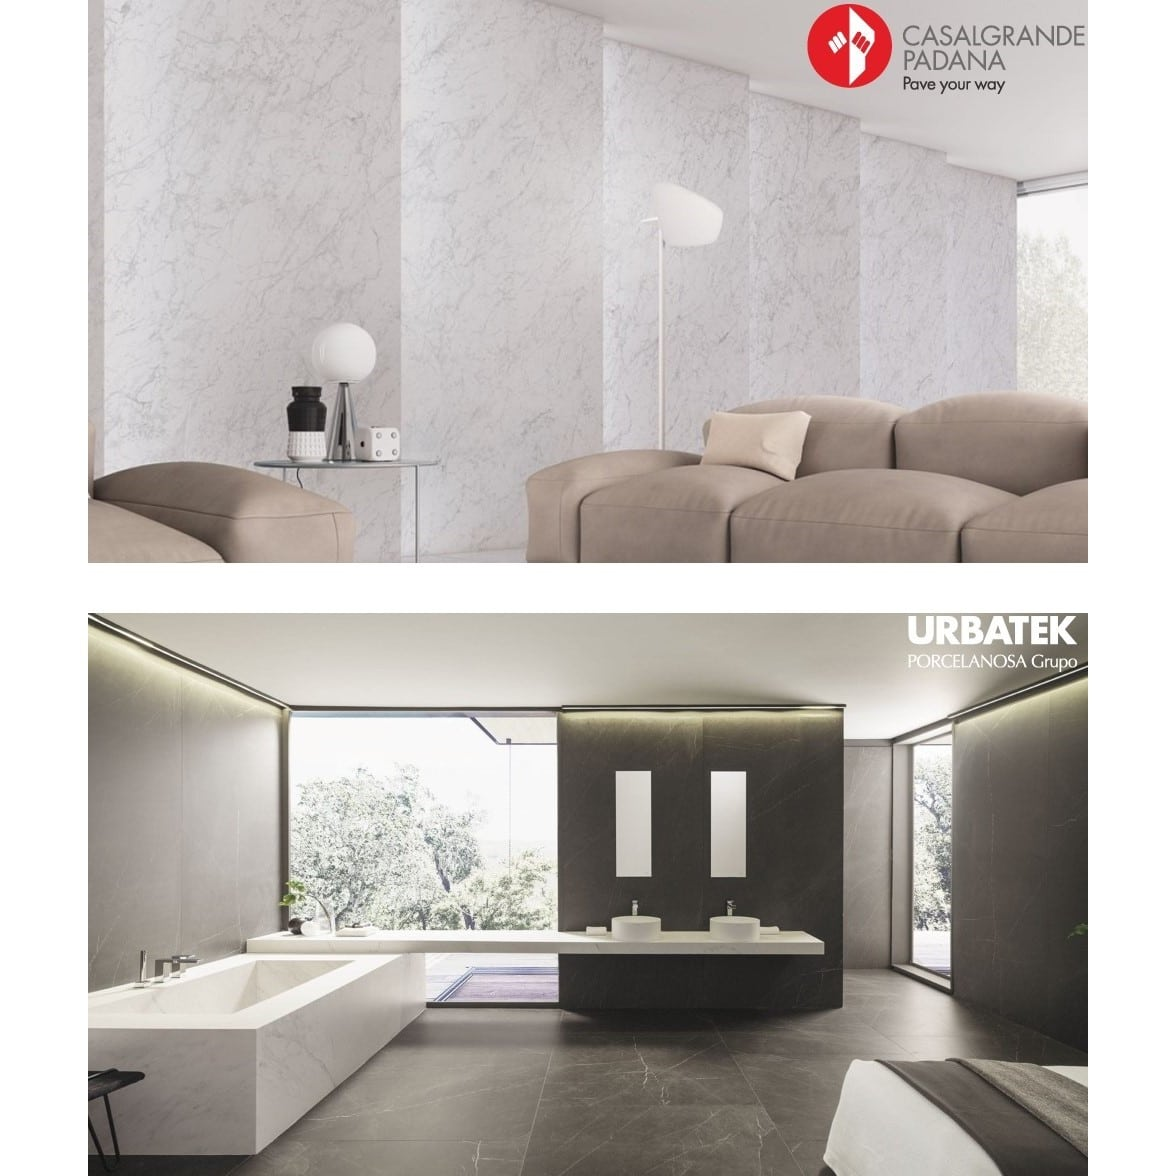 Bathrooms In Focus - Large Format Tile - Kontinua - XLight